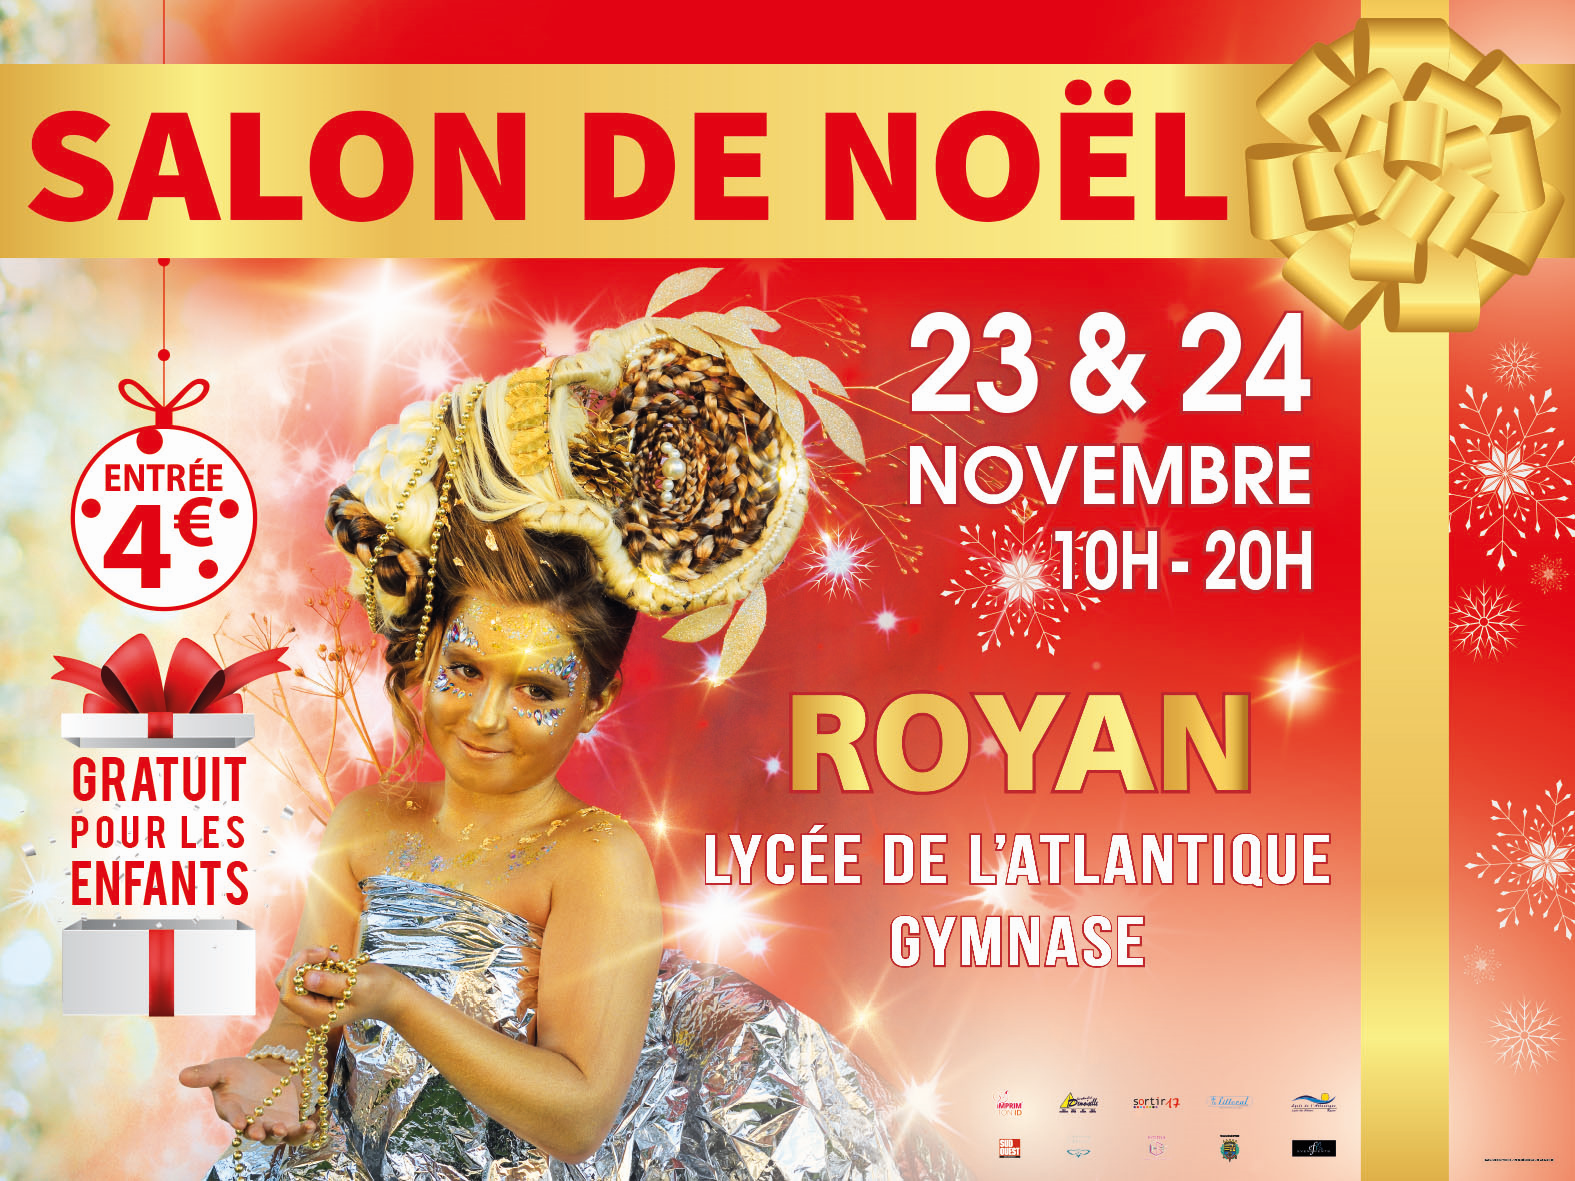 LE SALON DE NOEL 1ère EDITION ce week end à Royan, voici le programme